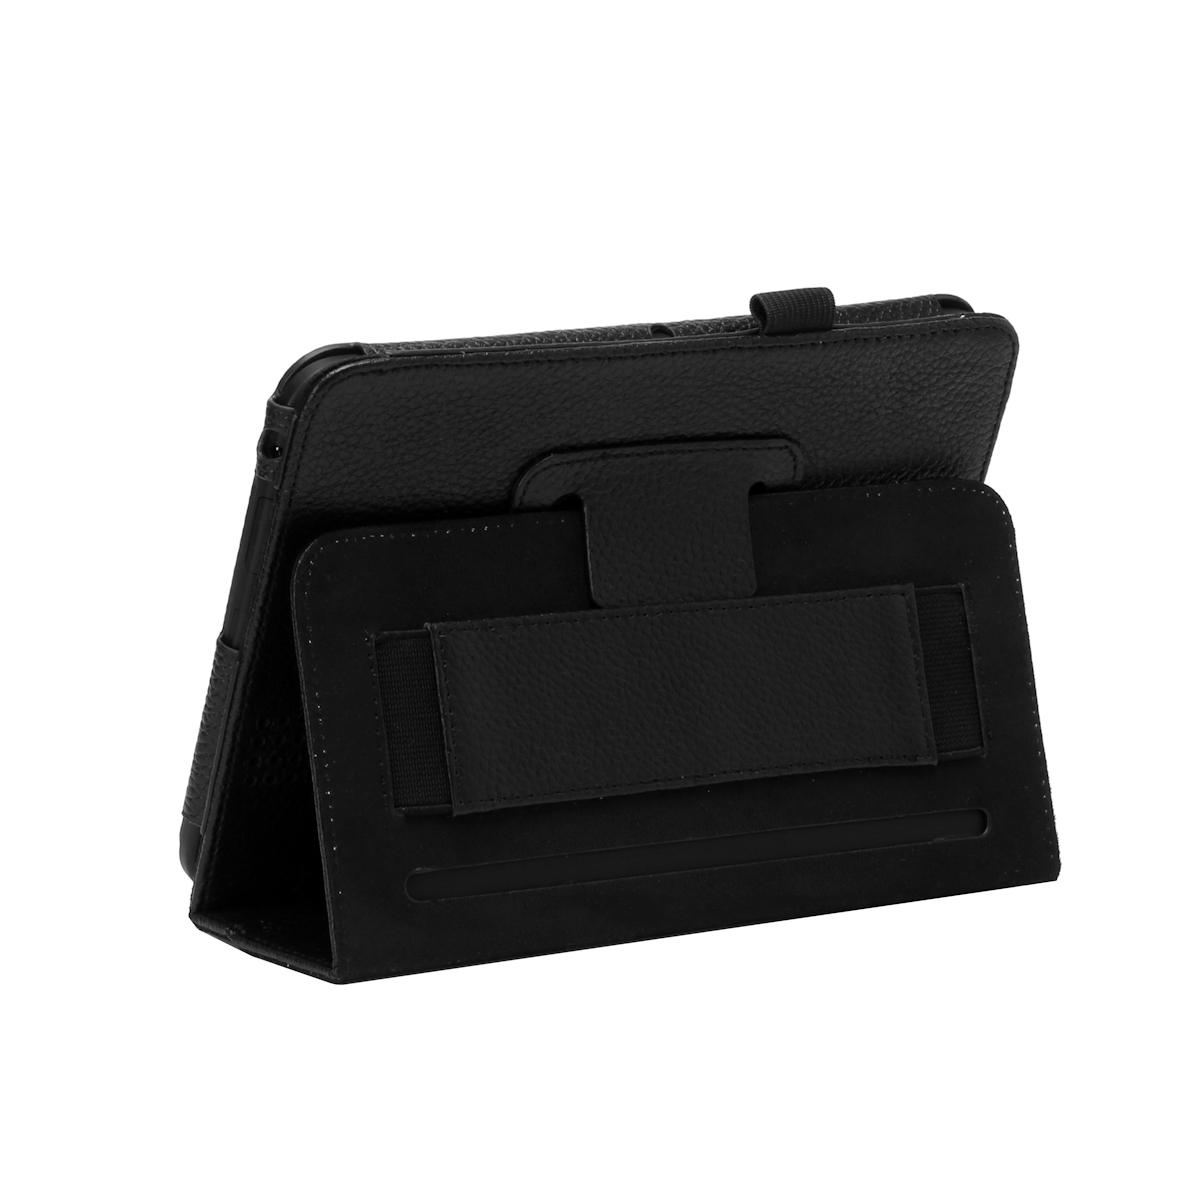 kindle fire hd 7 genuine leather case